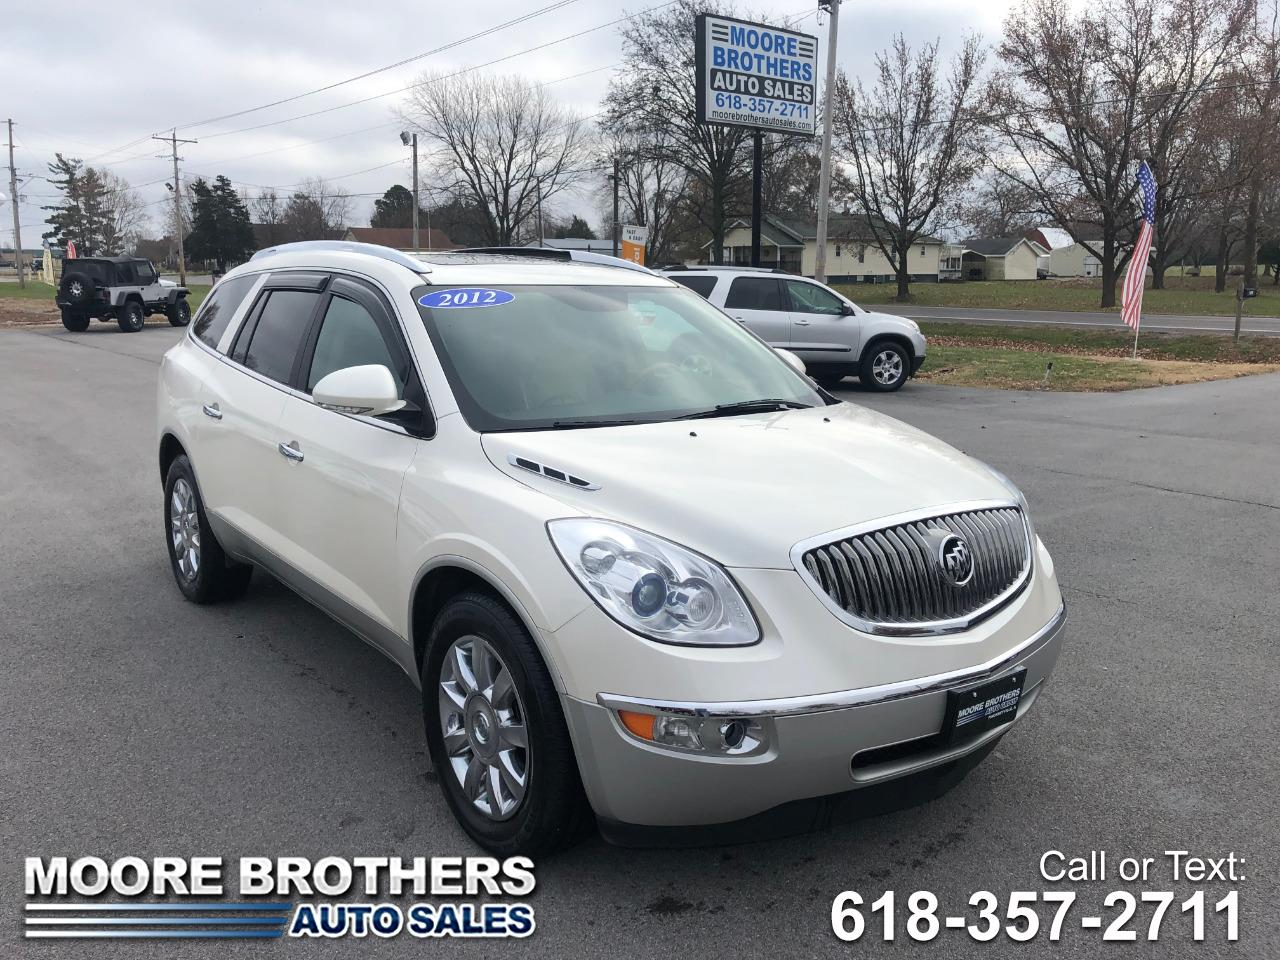 2012 Buick Enclave AWD CXL